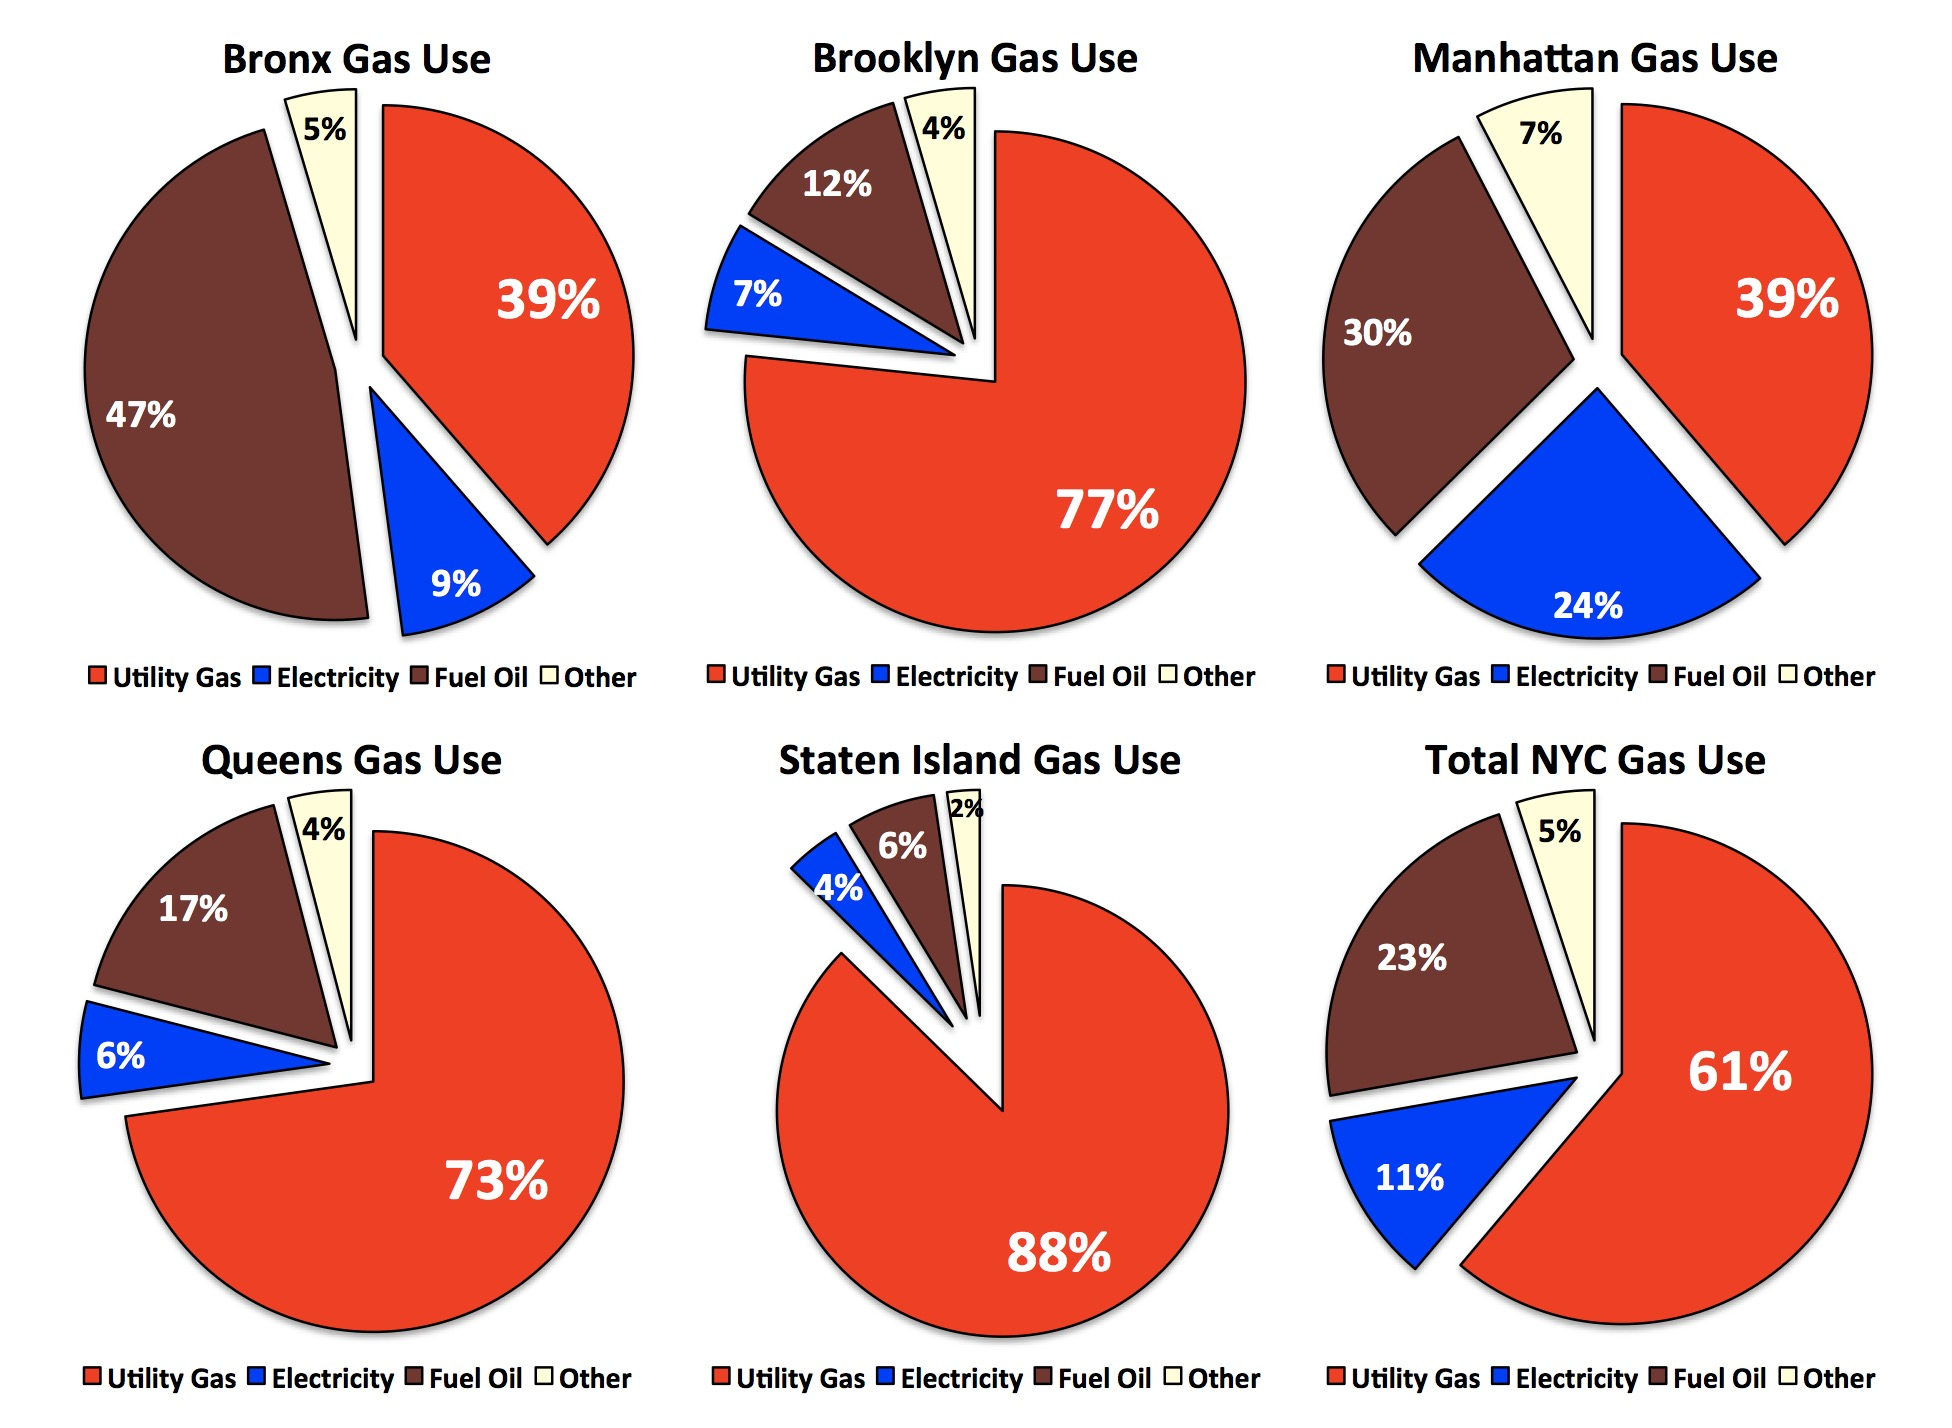 New York City Natural Gas Use